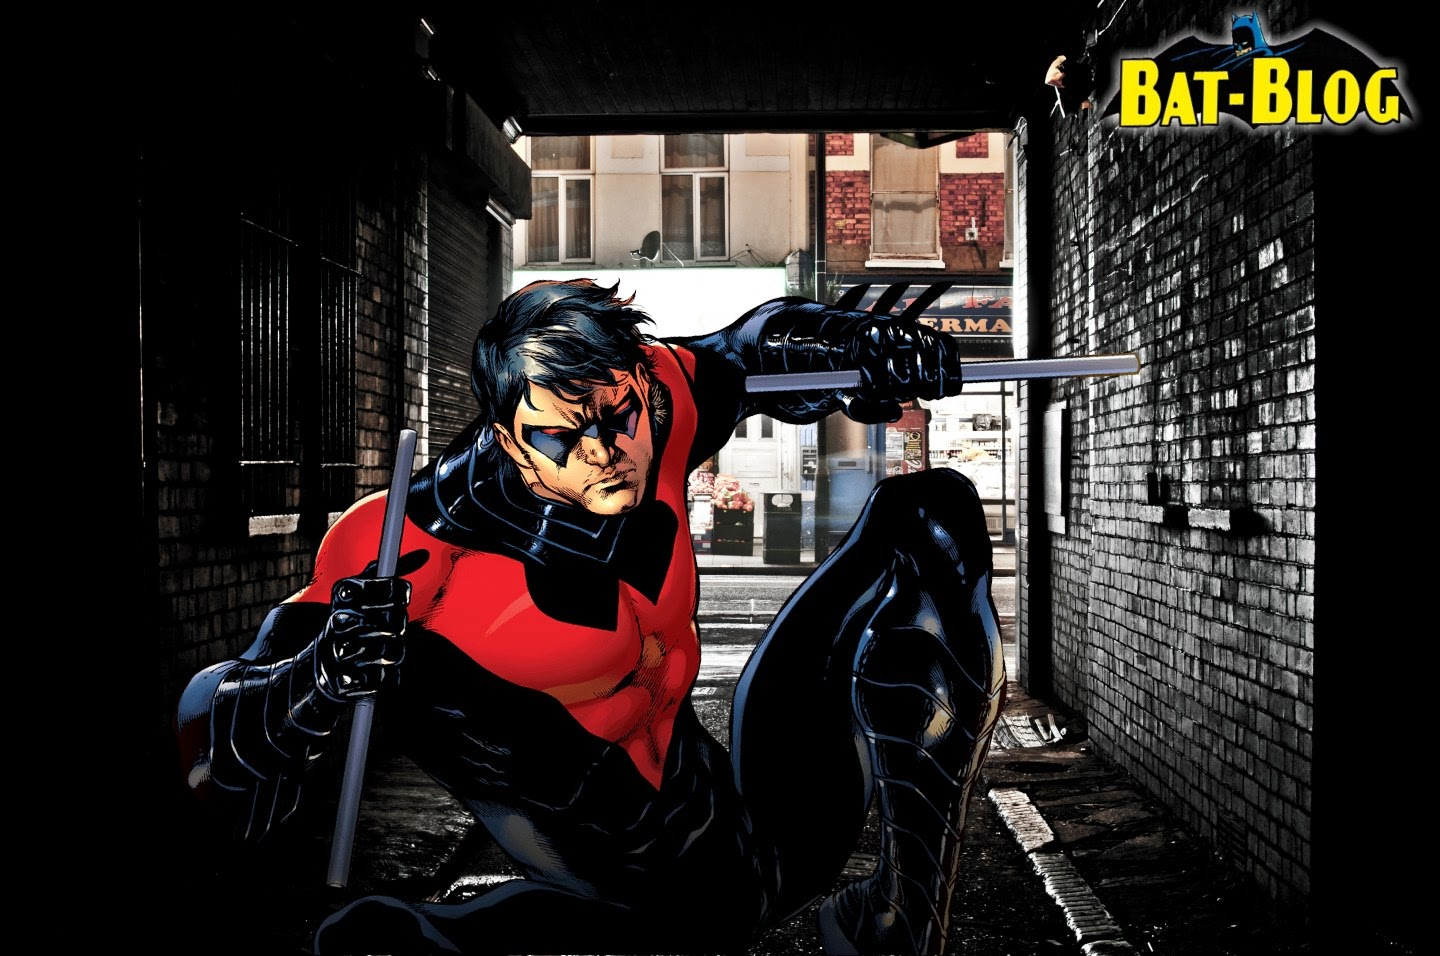 New BATMAN COMIC BOOK WALLPAPERS Nightwing and Deadshot Boys 1440x956